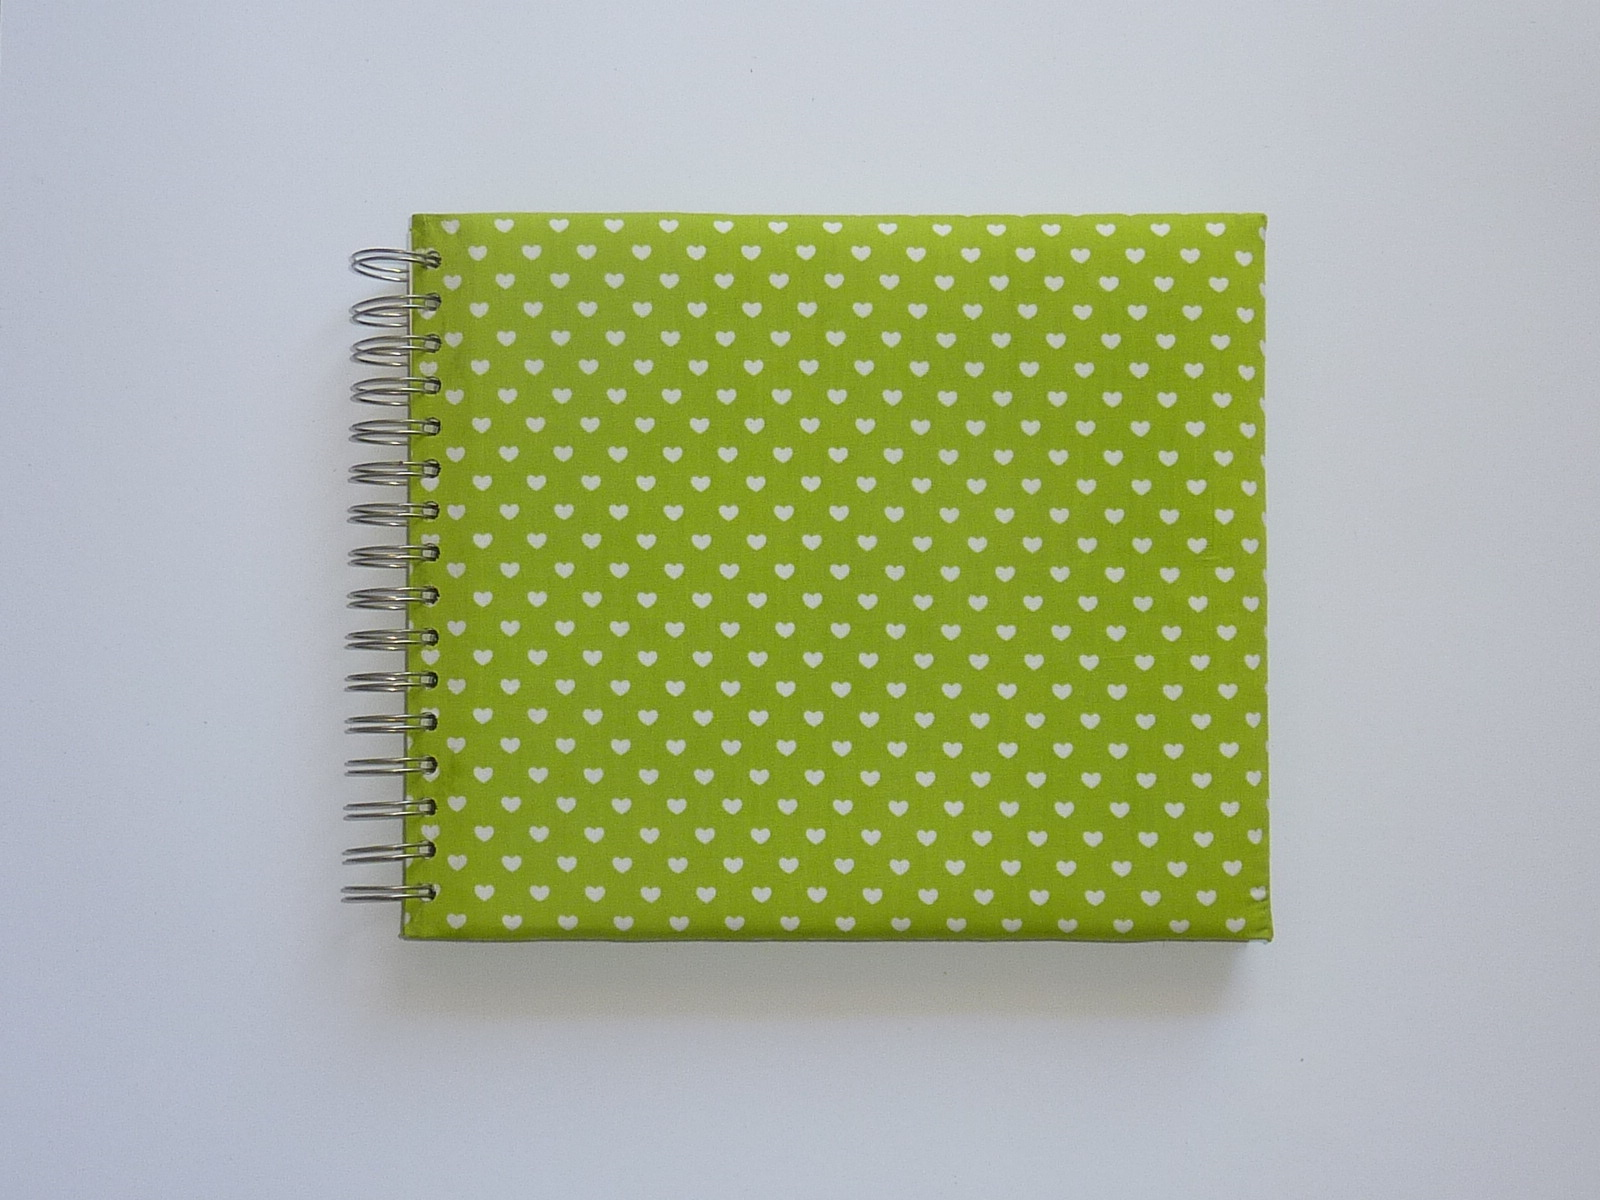 Green with white hearts (The baby's notebook)